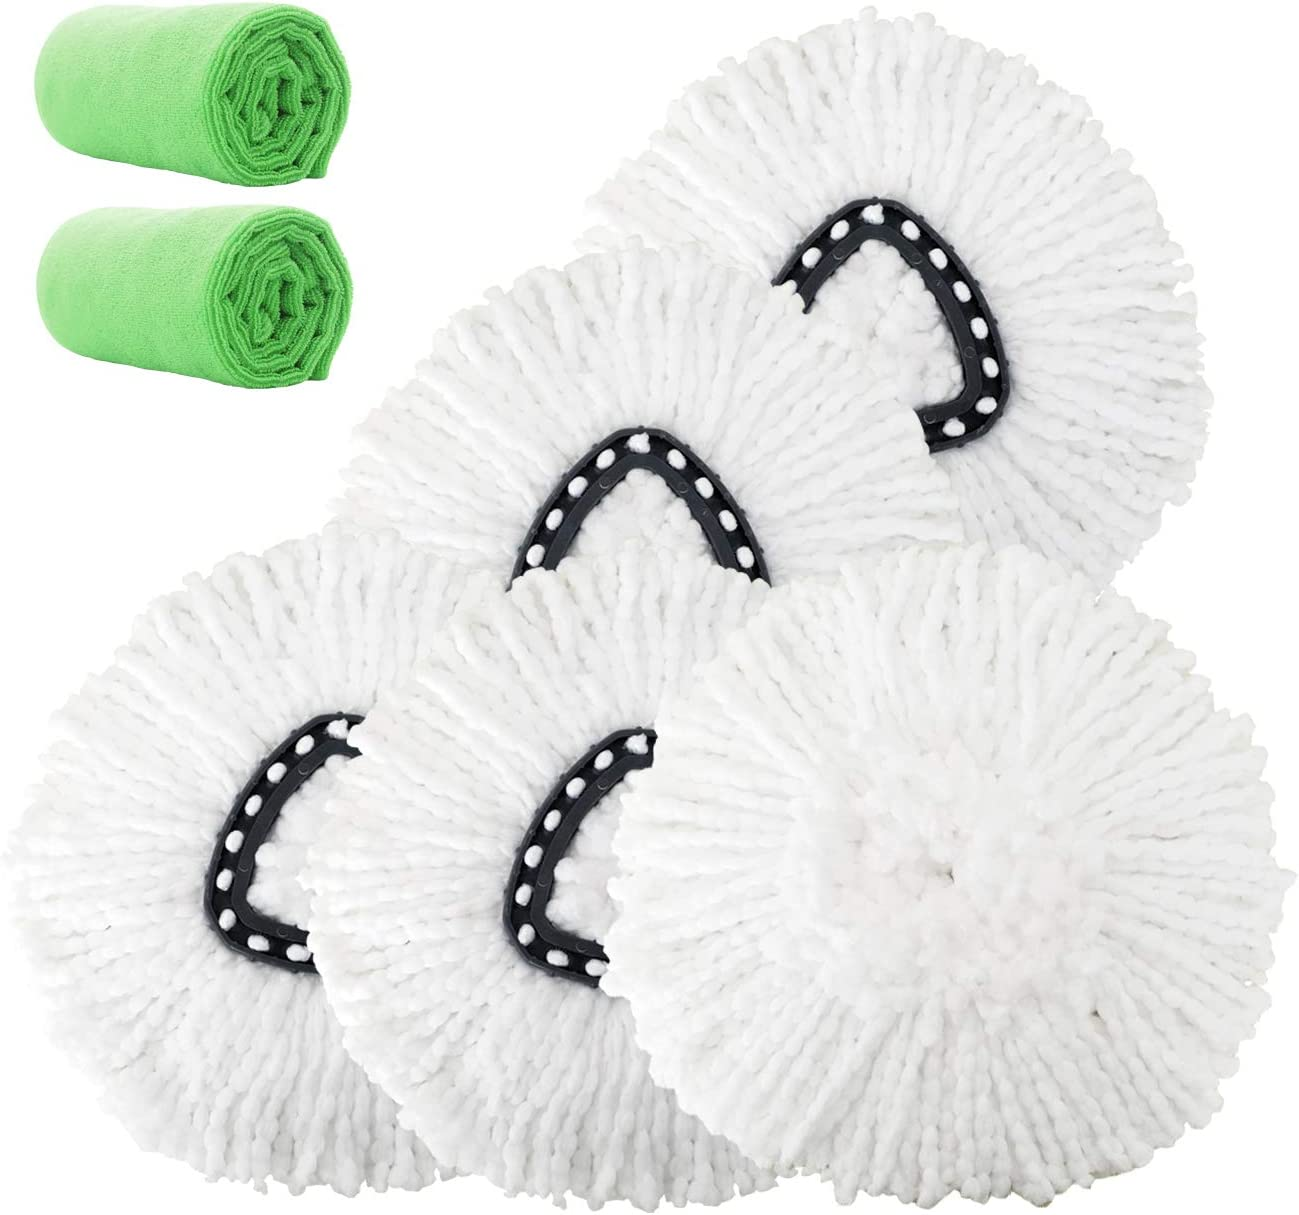 Max 86% OFF 4 Pack Super-cheap Mop Head Replacement Microfiber Repl Spin Refills